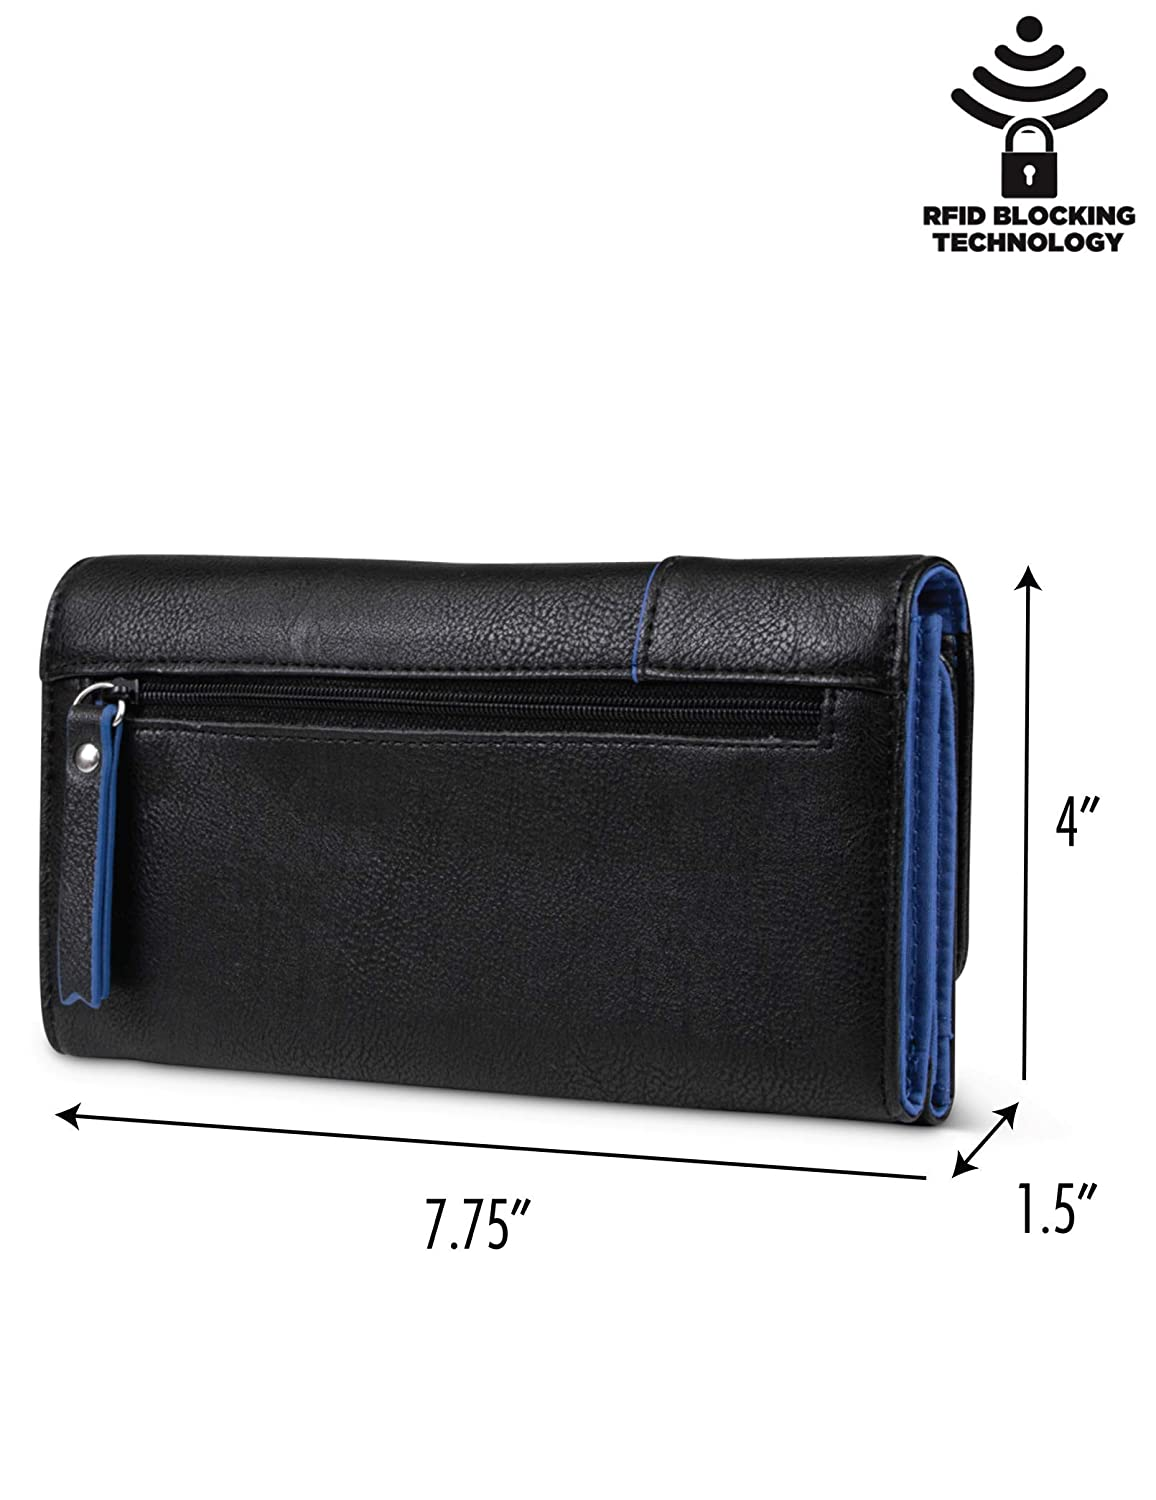 Nautica Money Manager RFID Womens Wallet Clutch Organizer